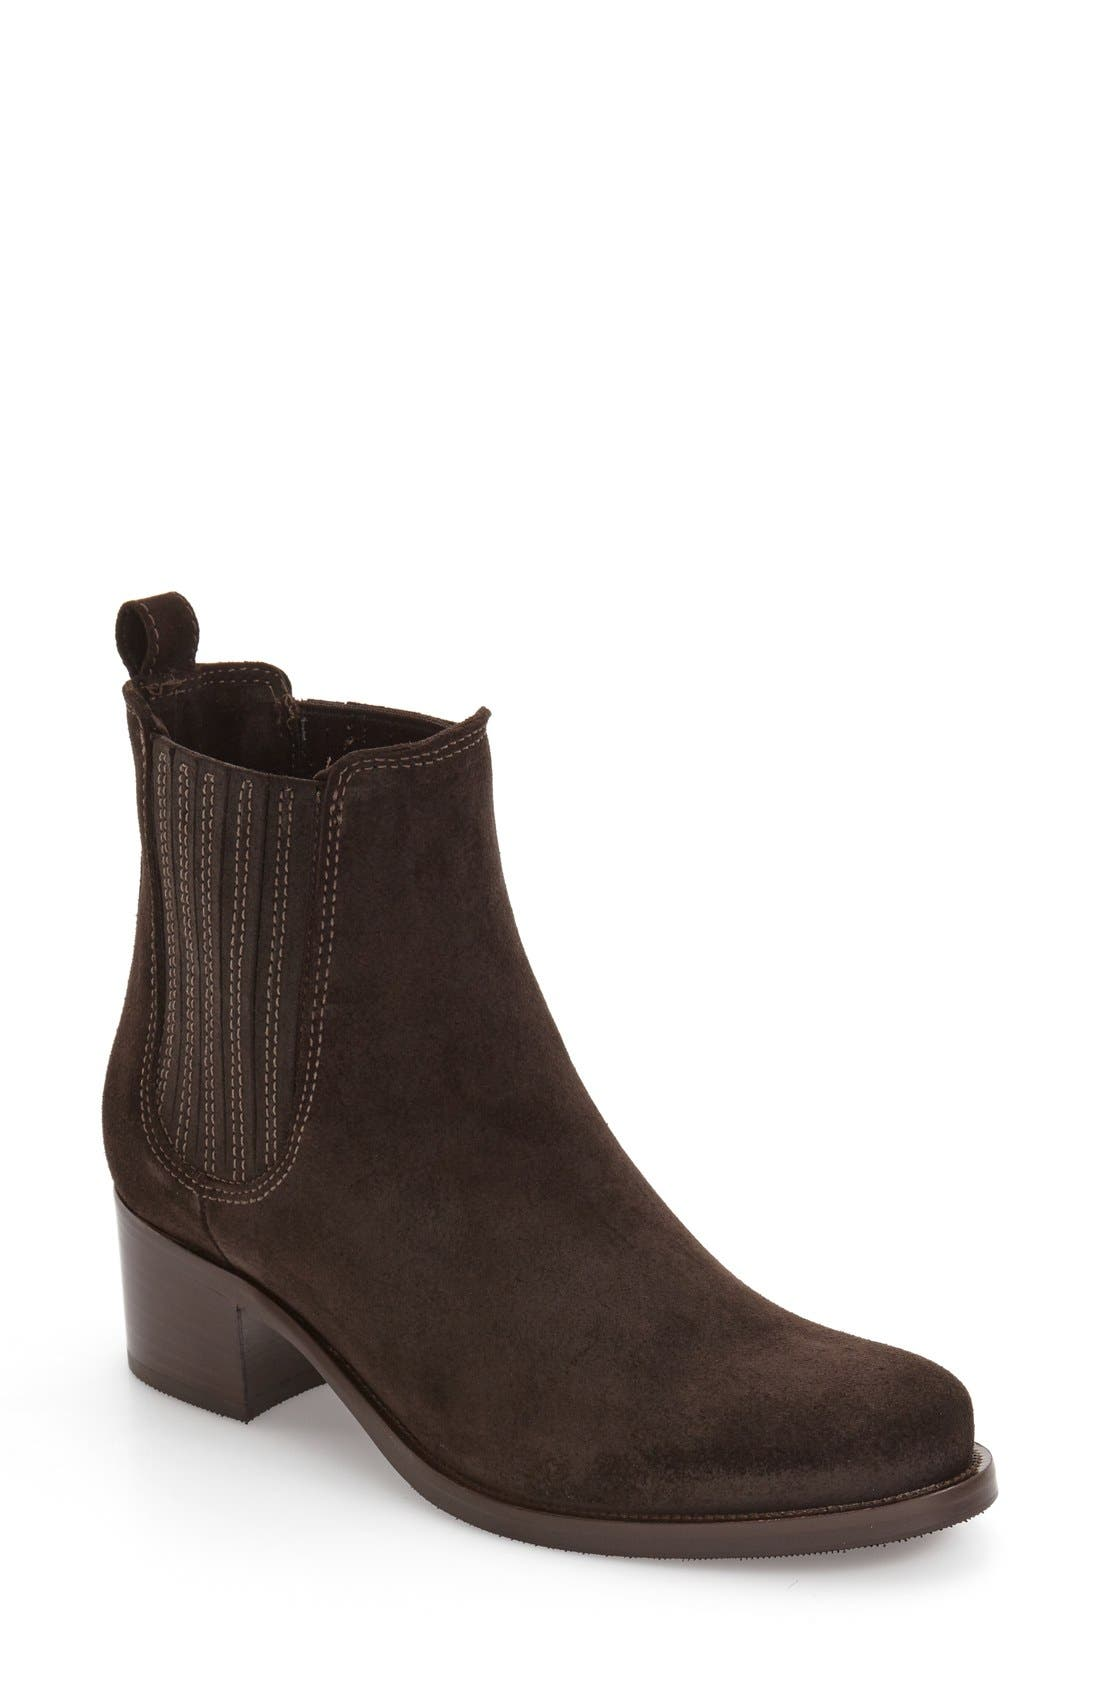 Prince Waterproof Bootie,                             Main thumbnail 1, color,                             200